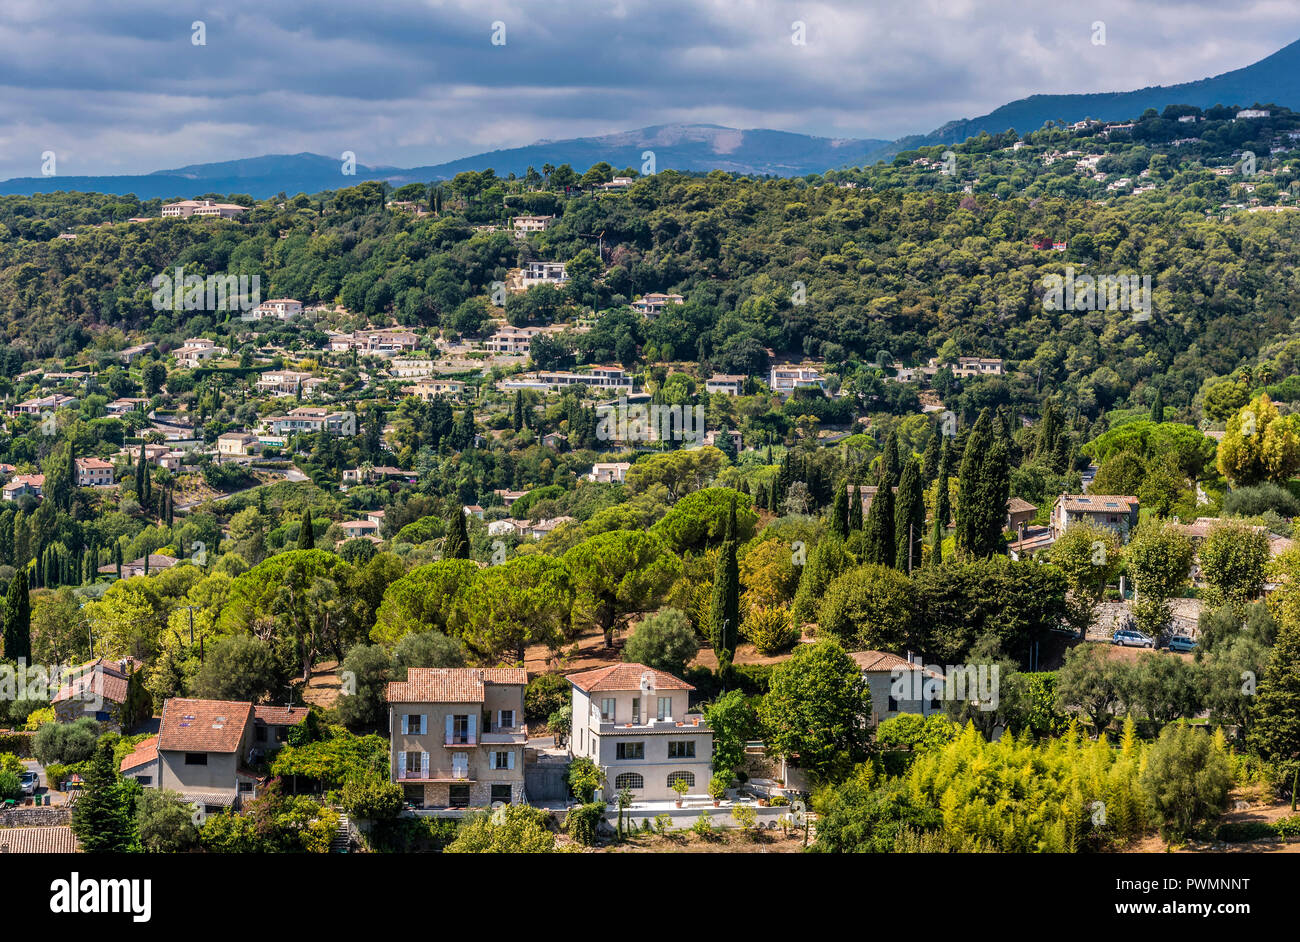 France, Provence-Alpes-Cote-d'Azur, Alpes-Maritimes, overall view of Saint-Paul-de-Vence (Plus Beaux Villages de France, list of villages designated as les plus beaux (the most beautiful) in France) - Stock Image